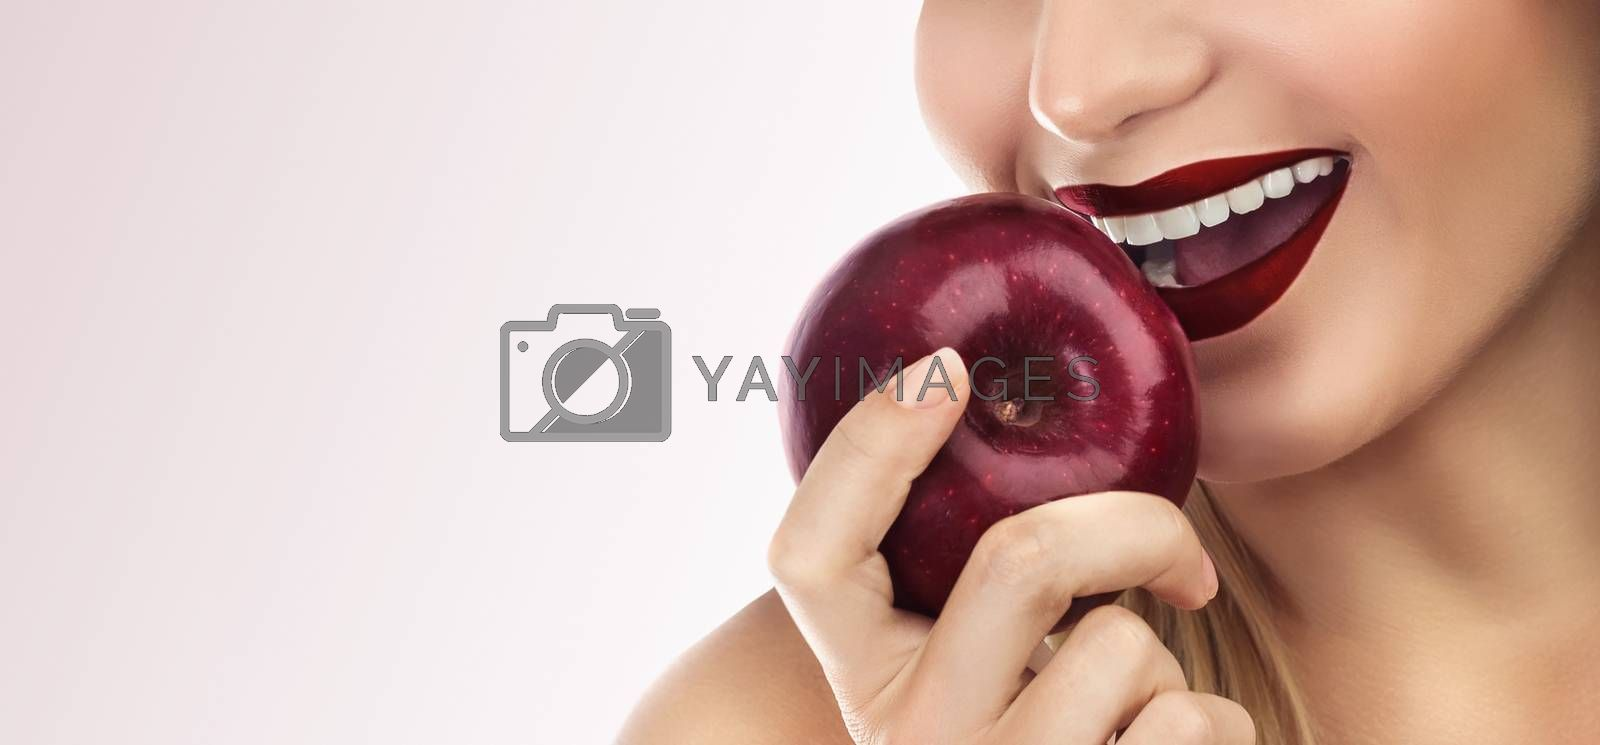 Closeup photo of a woman's face, lips with red lipstick, female biting  fresh red apple, isolated on a clean background, beautiful smile with perfect white teeth, dental care concept